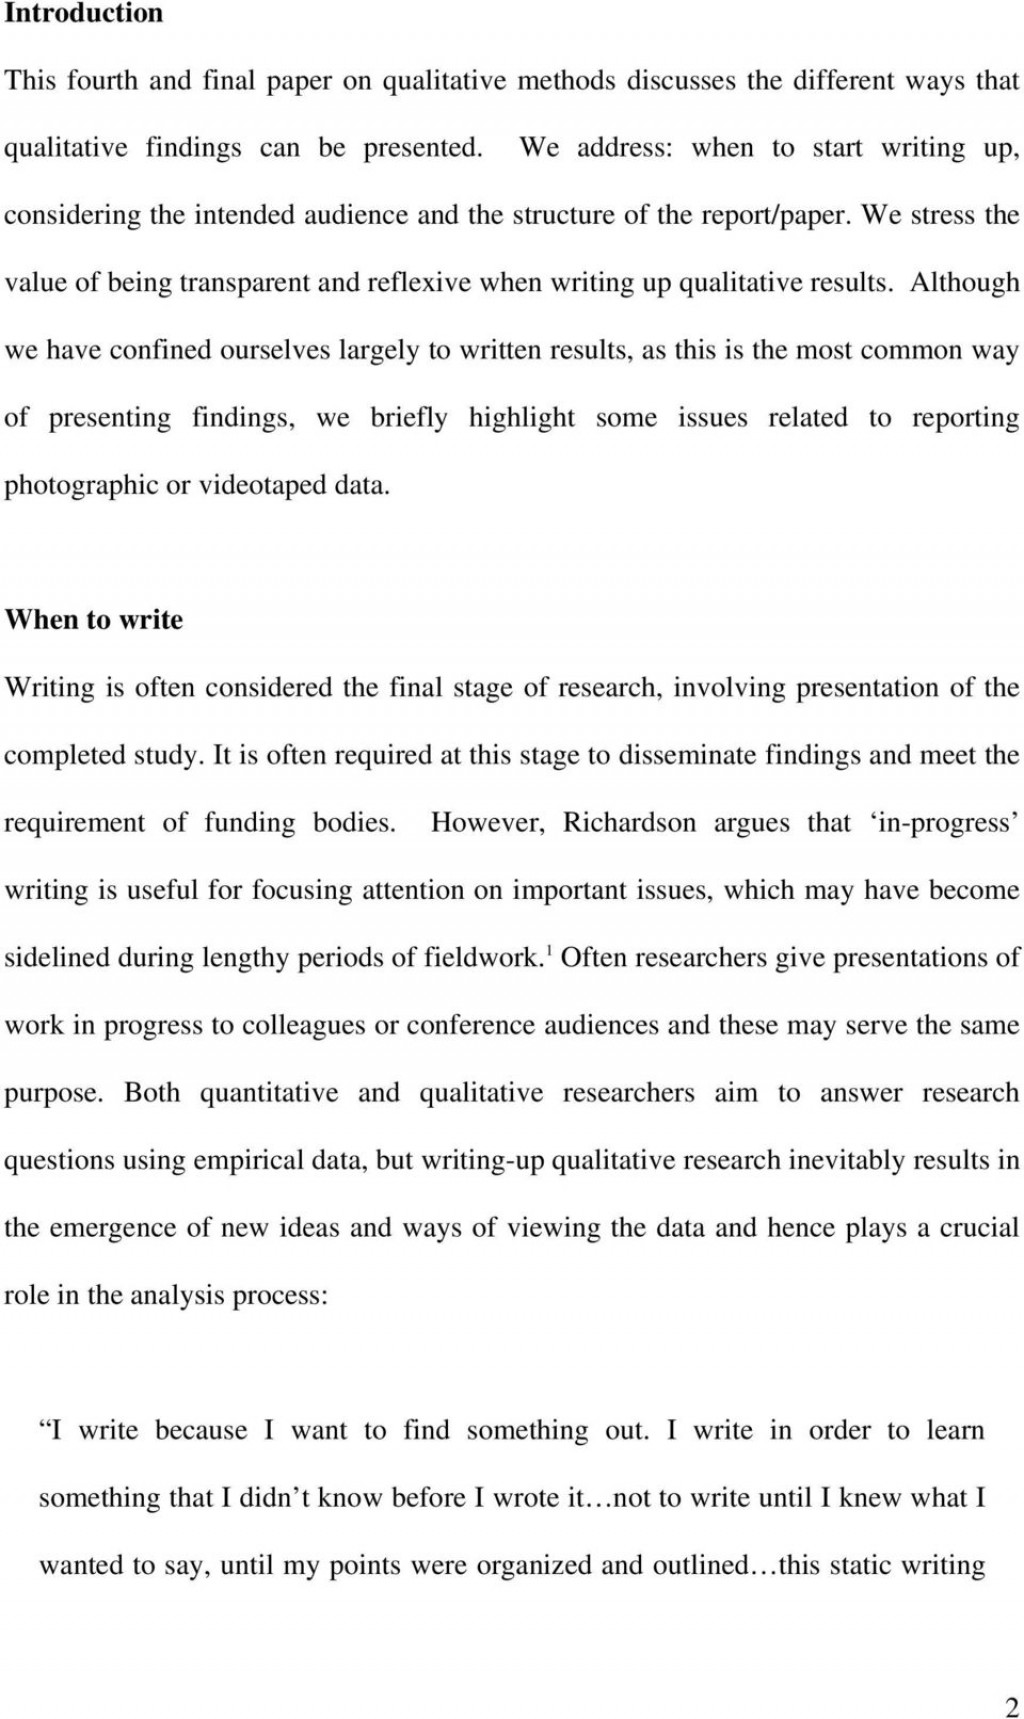 008 How To Write Up Results In Research Paper Page 2 Stupendous A Large